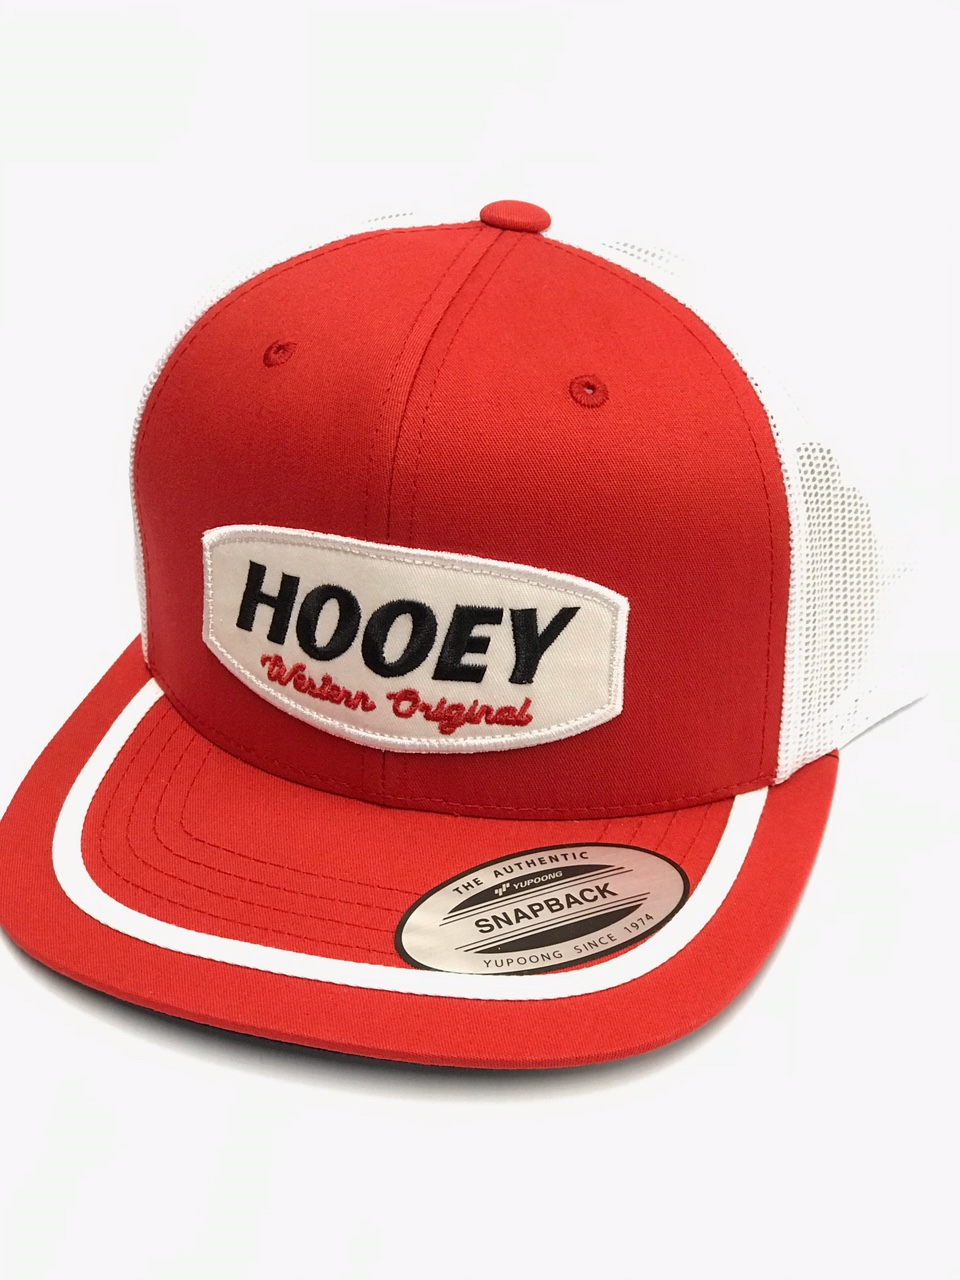 Hooey Galveston Red White Ball Cap